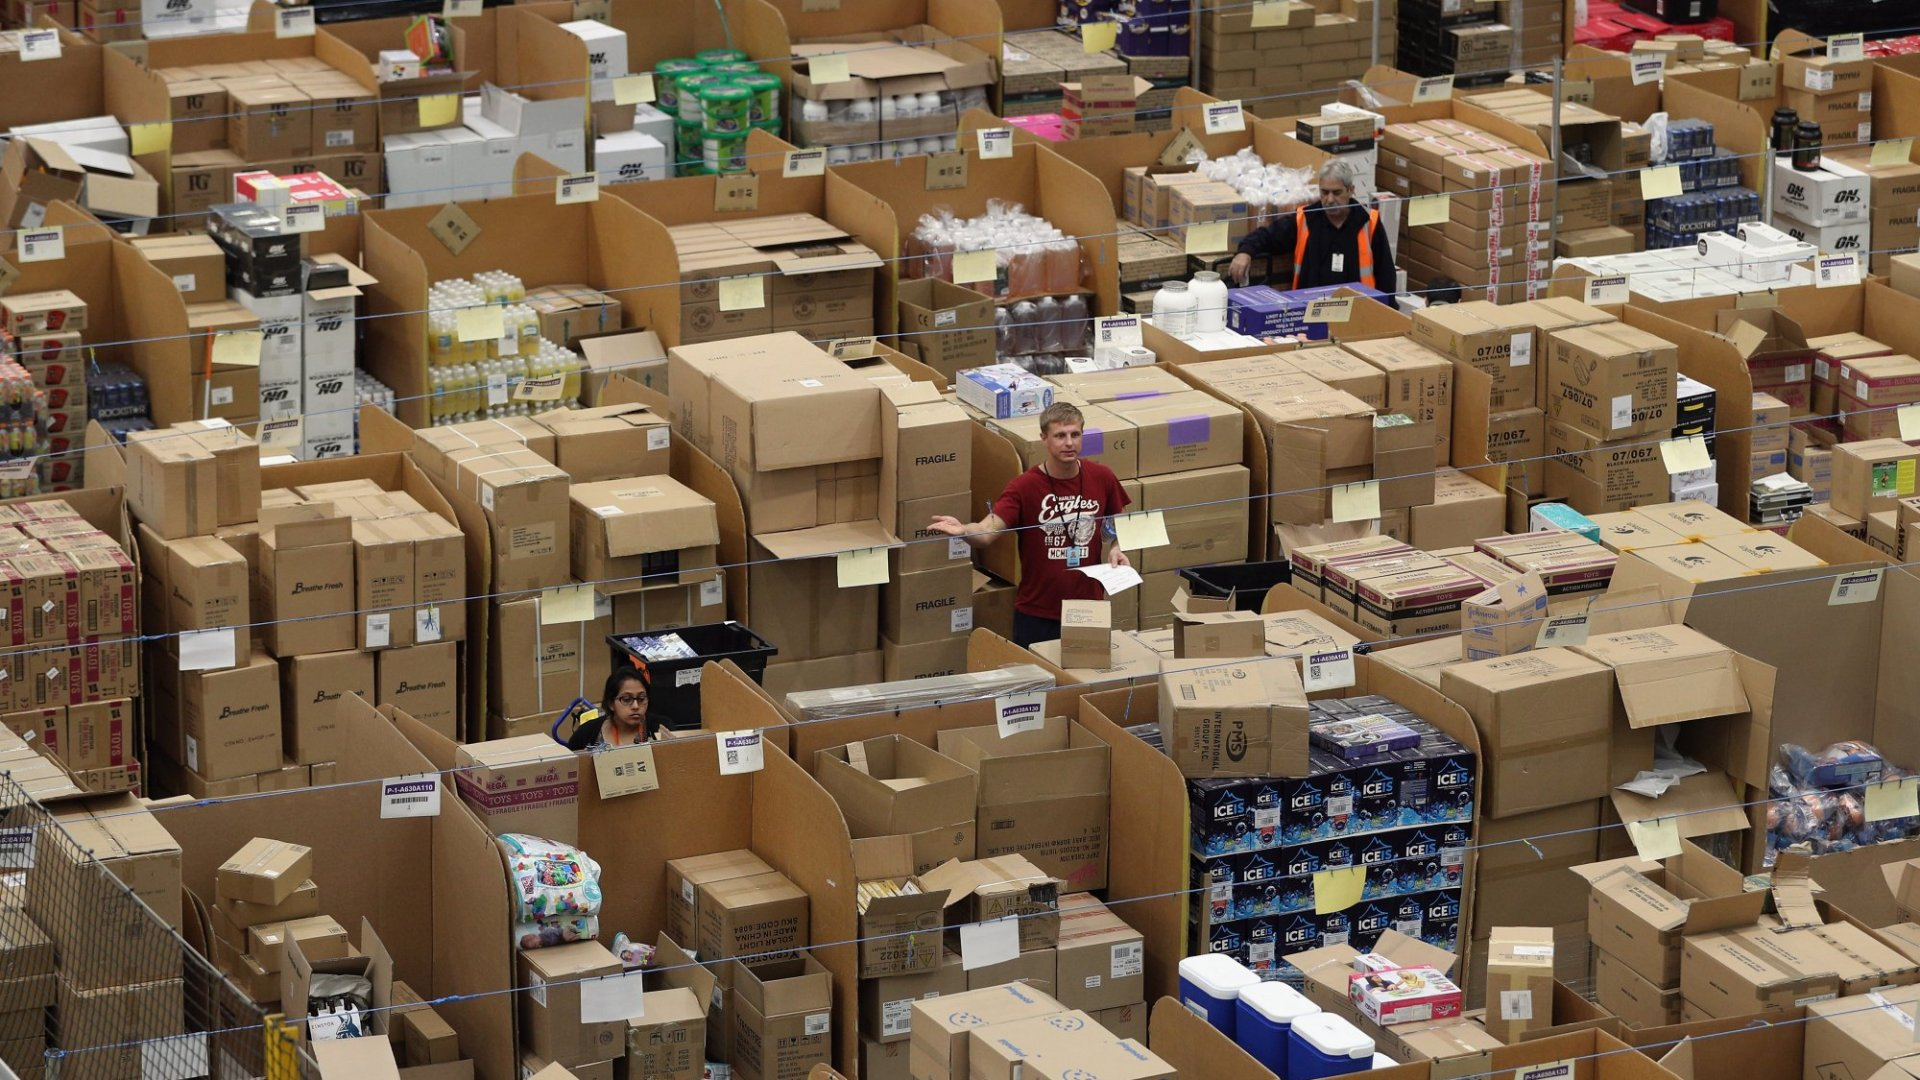 Want to Work for Amazon? The E-Commerce Giant Is Looking for Entrepreneurs